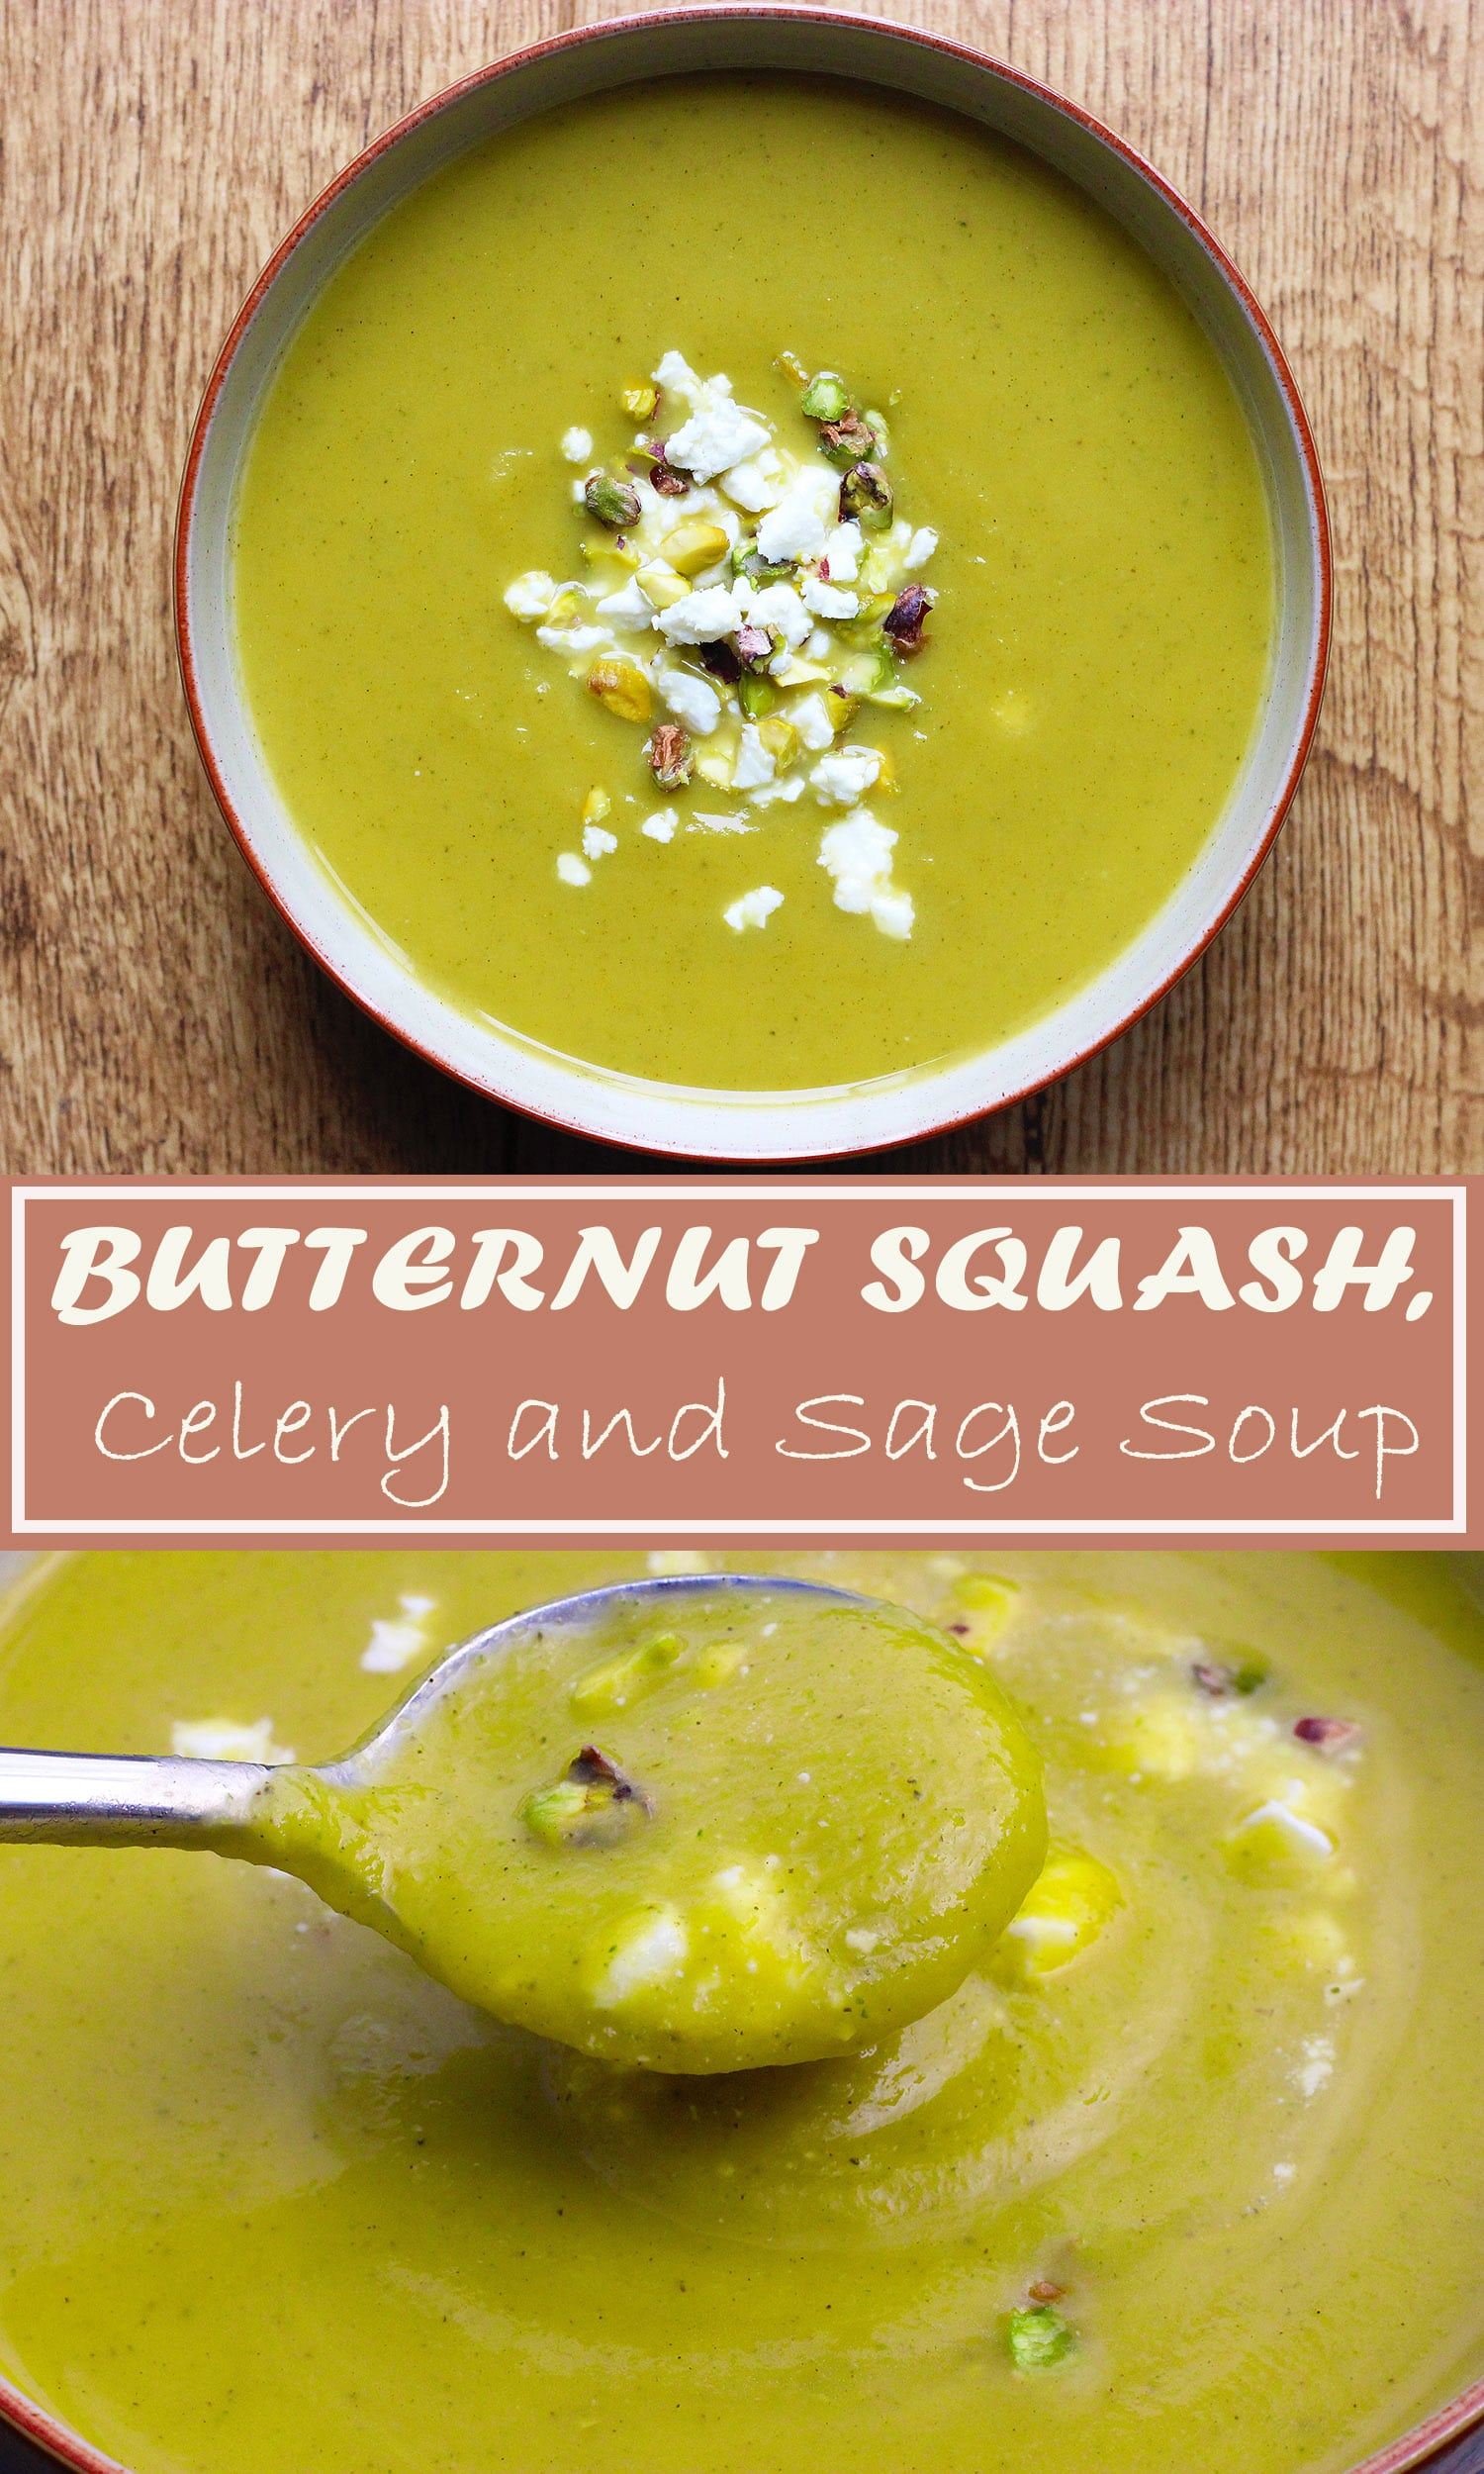 Butternut squash soup with celery and sage and topped with feta and chopped pistachios